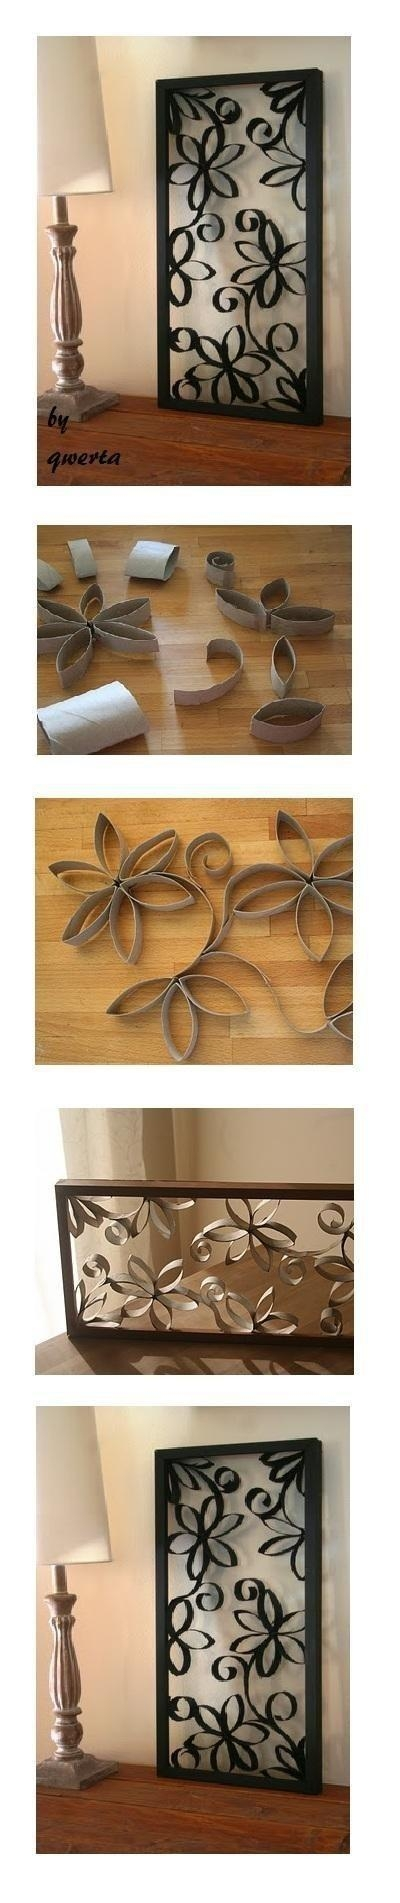 DIY - Toilet Paper Roll Wall Decoration by Hairstyle Tutorials